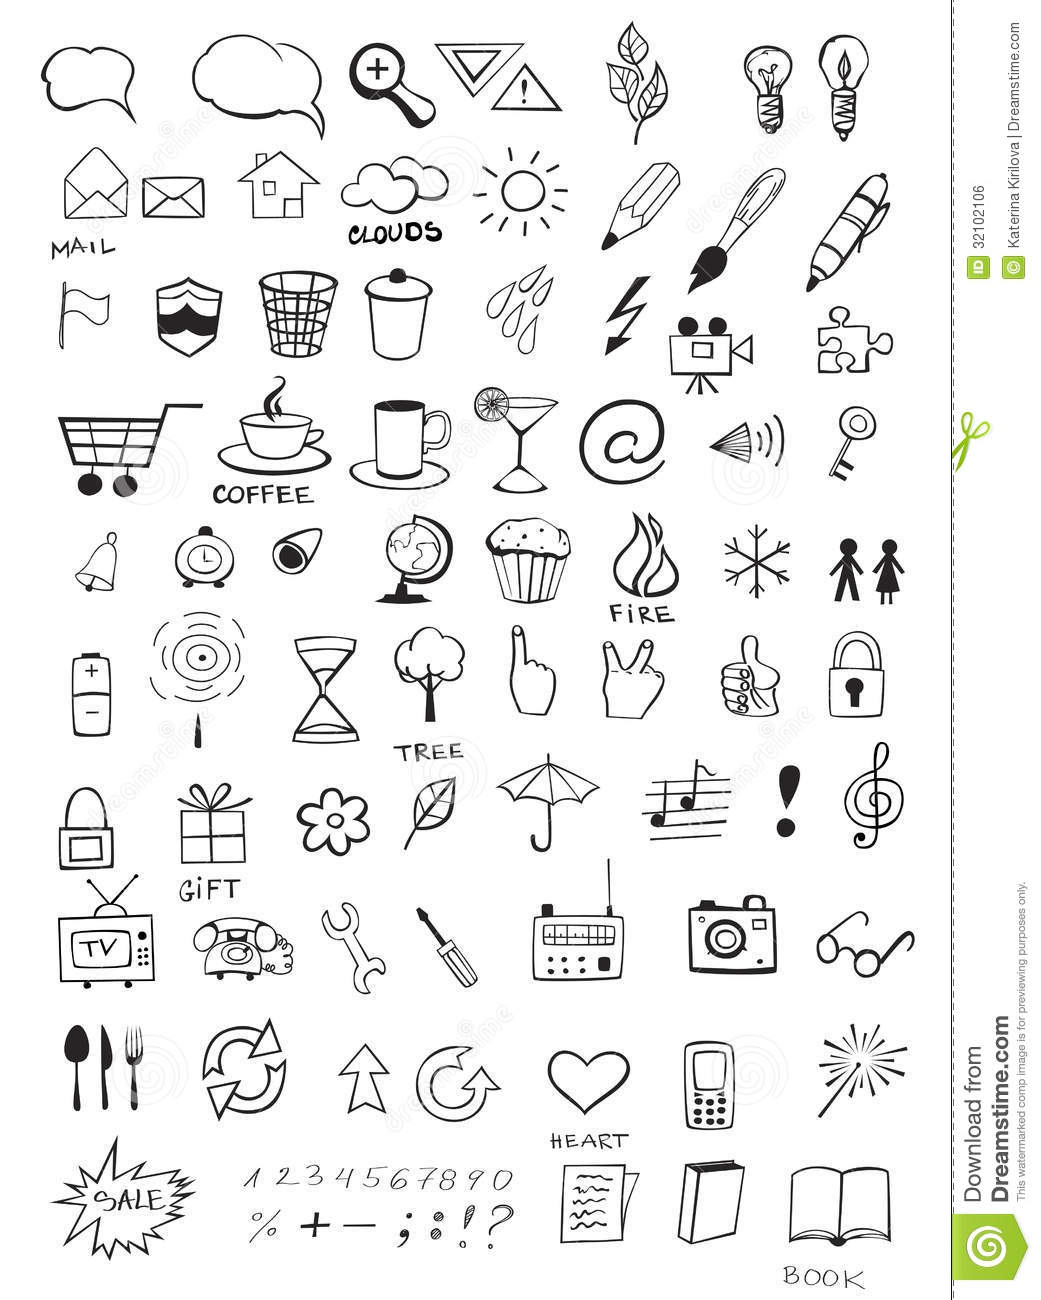 Hand Drawing Line Icons : Doodle icons royalty free stock image